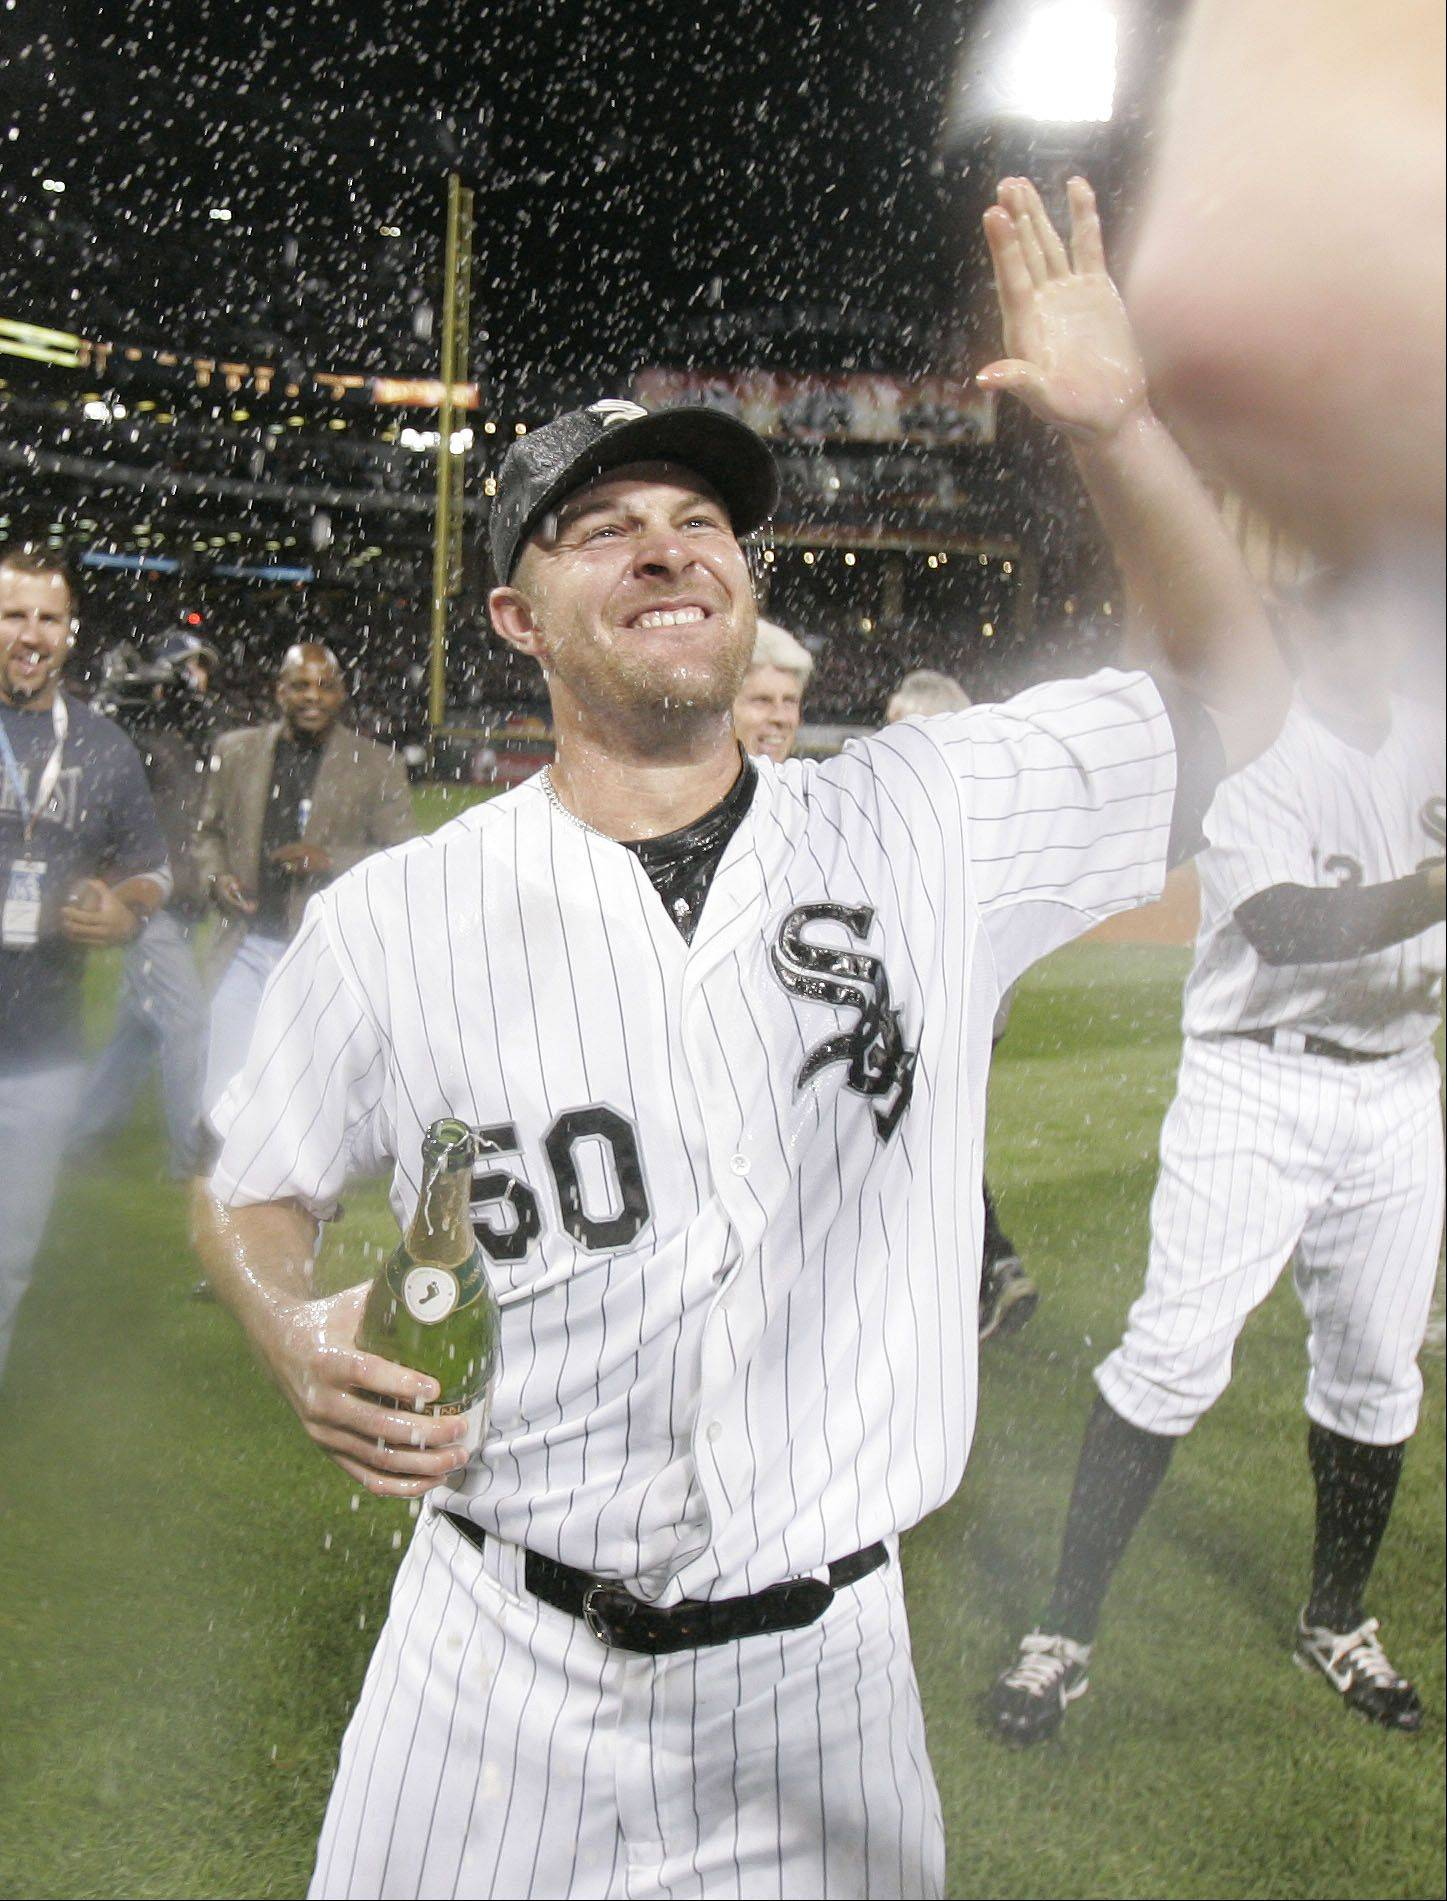 John Danks after the win over the Minnesota Twins in the Central Division tiebreaker game.